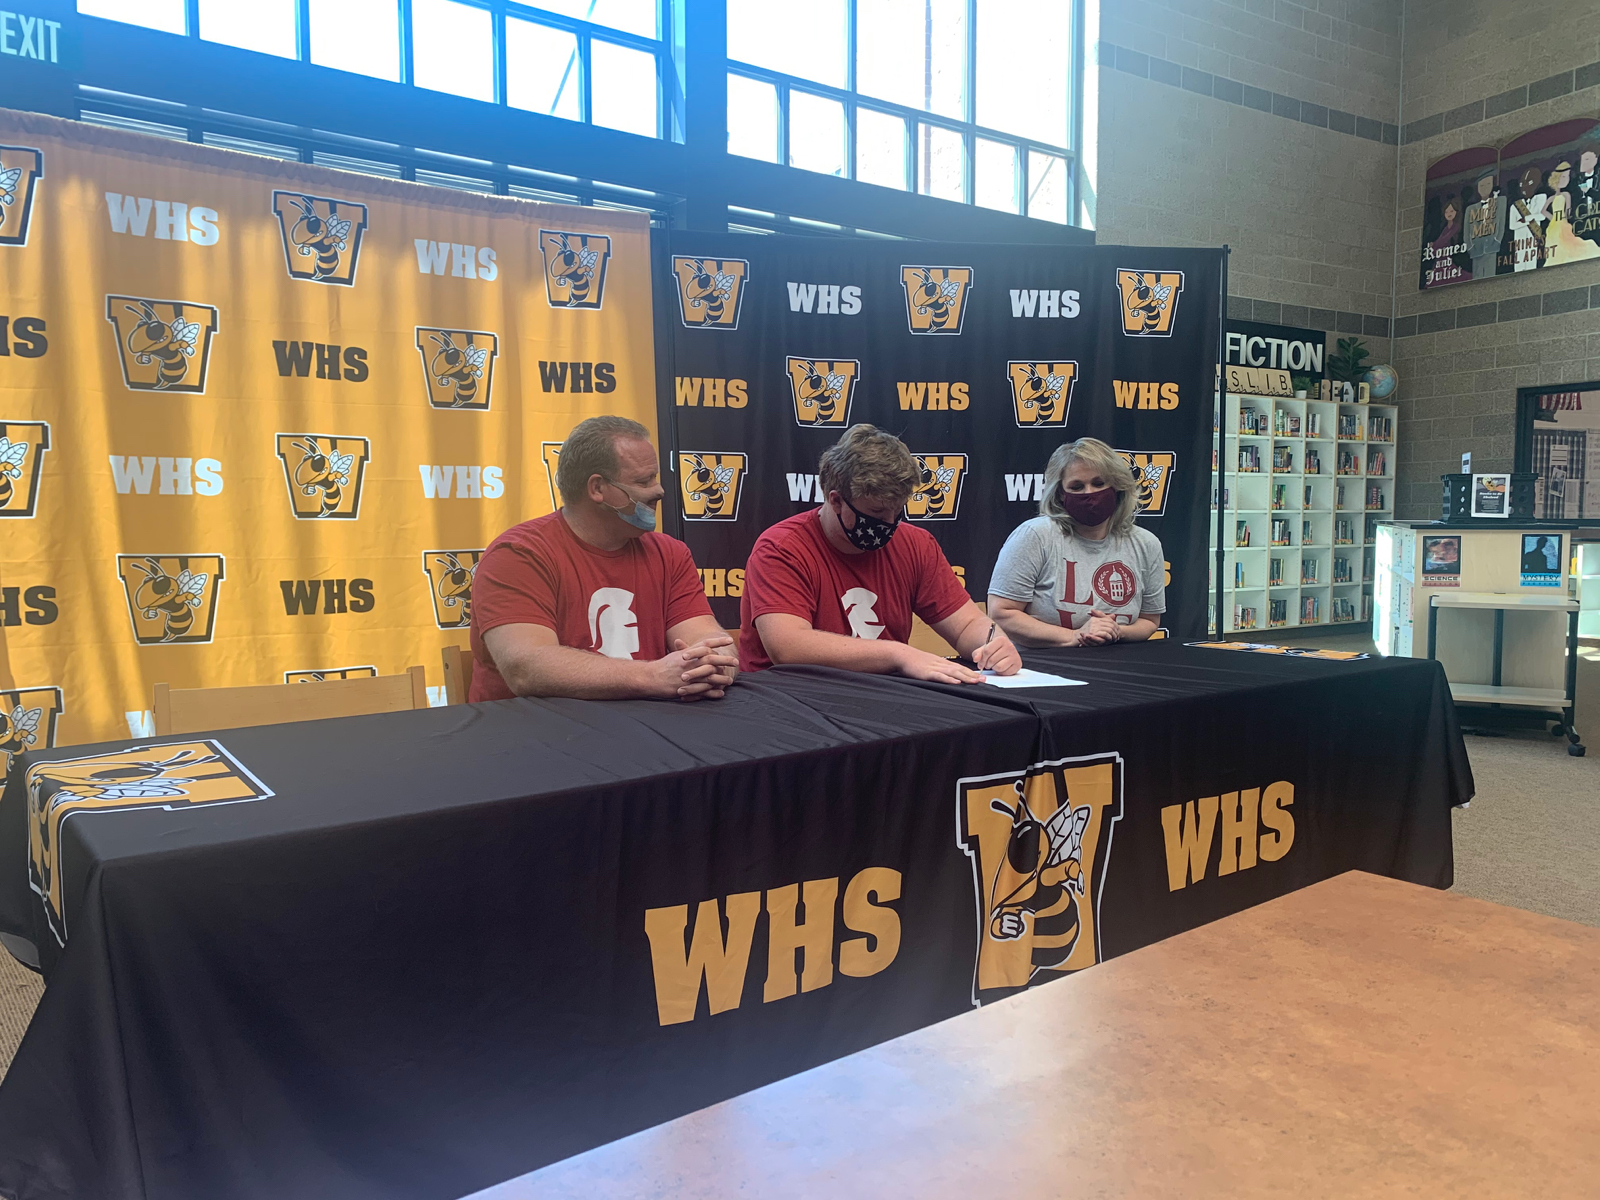 Brady Harding signs on to Play Football with SVU